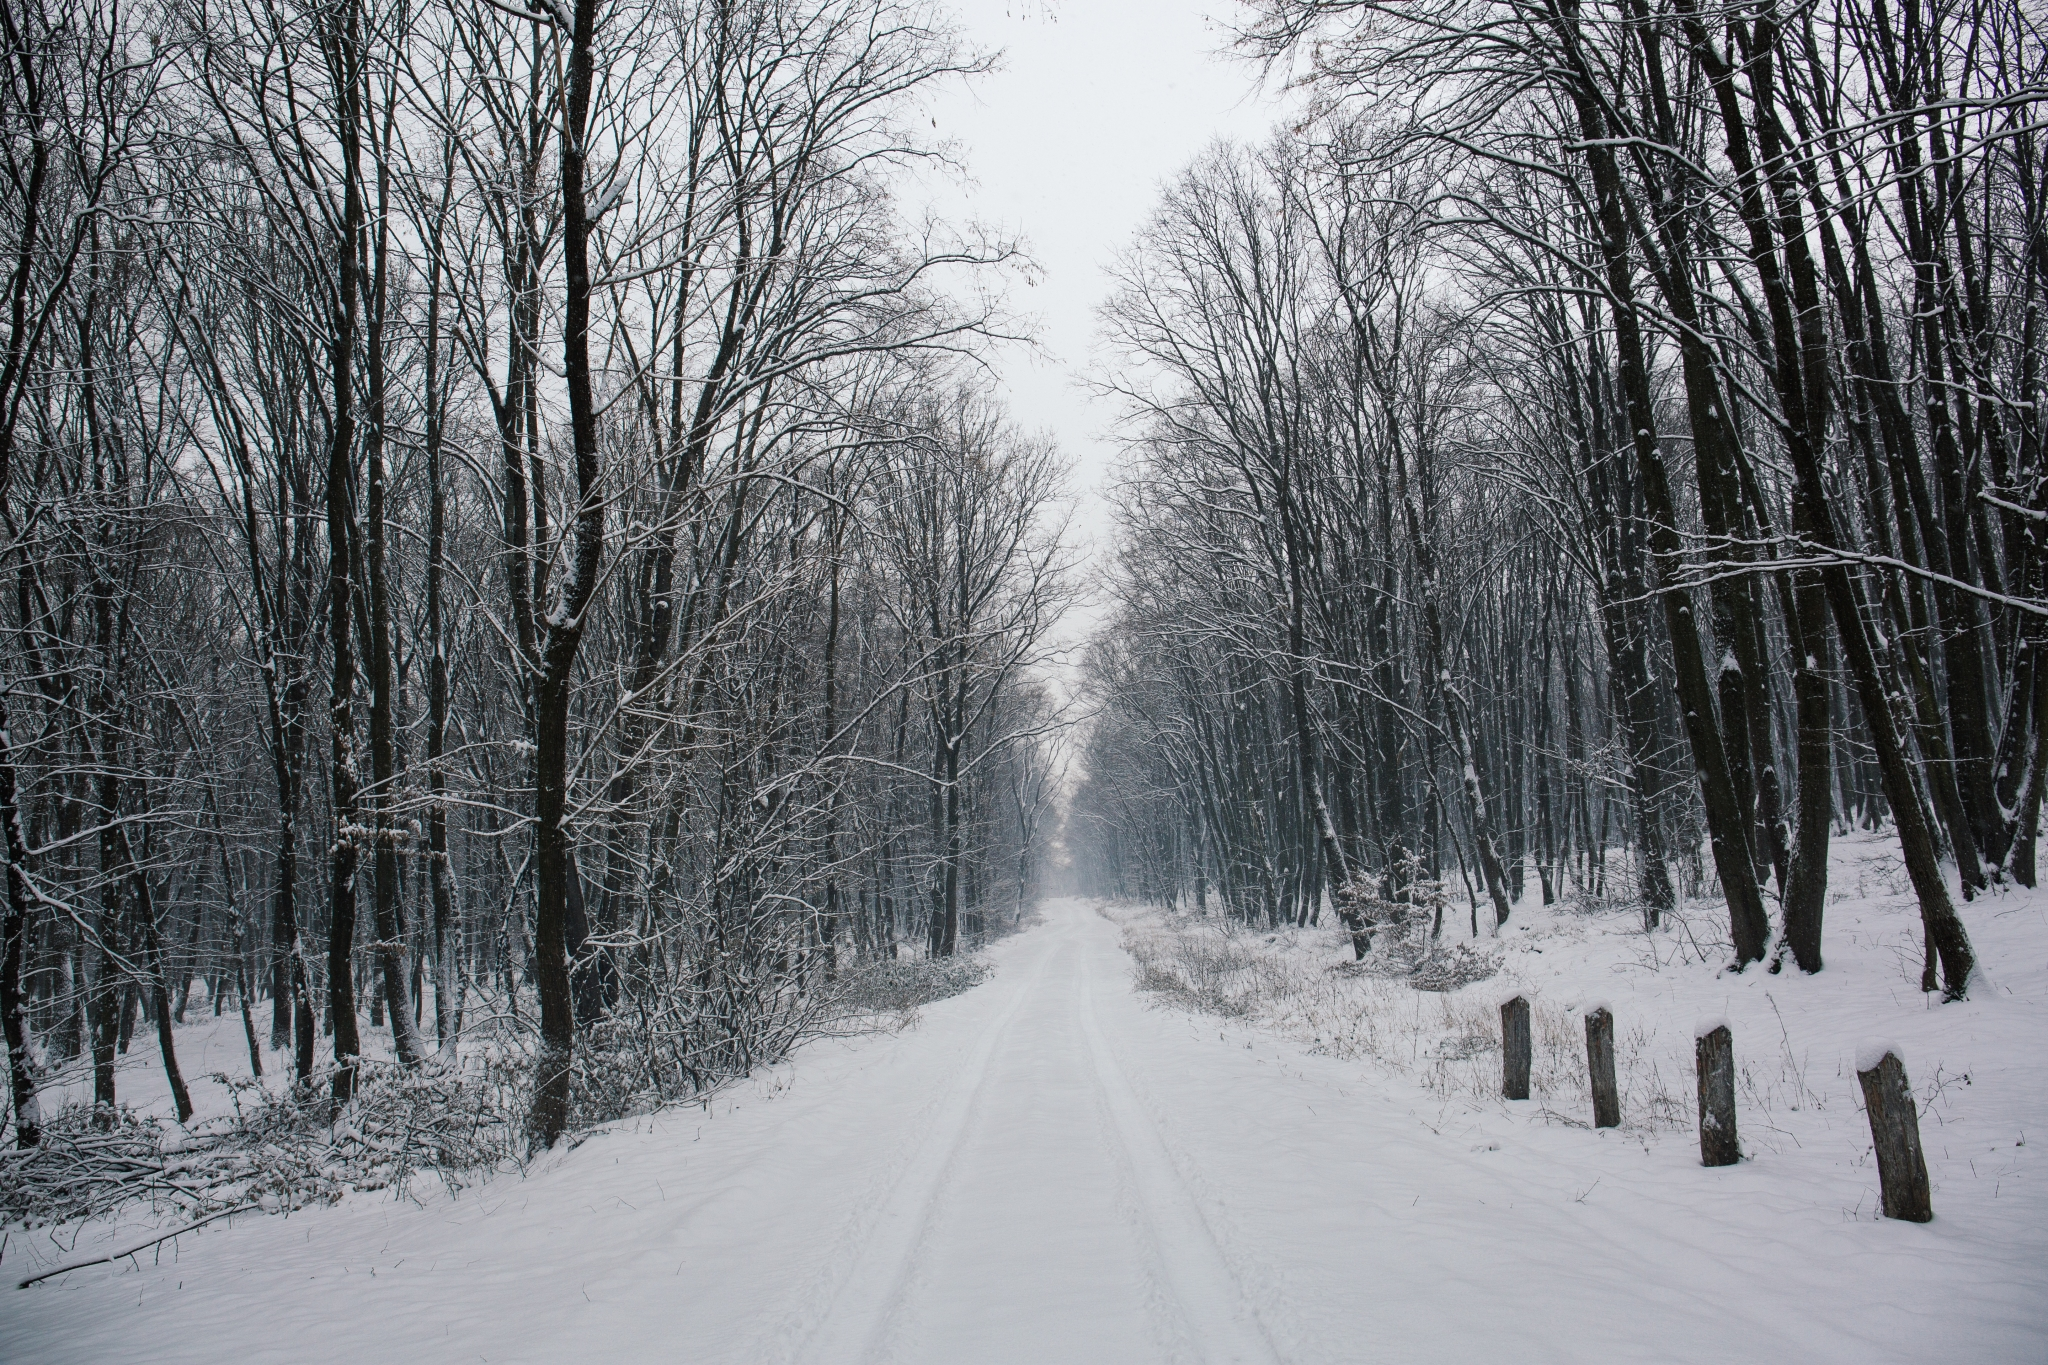 5 Tips For Snowy Winter RVing